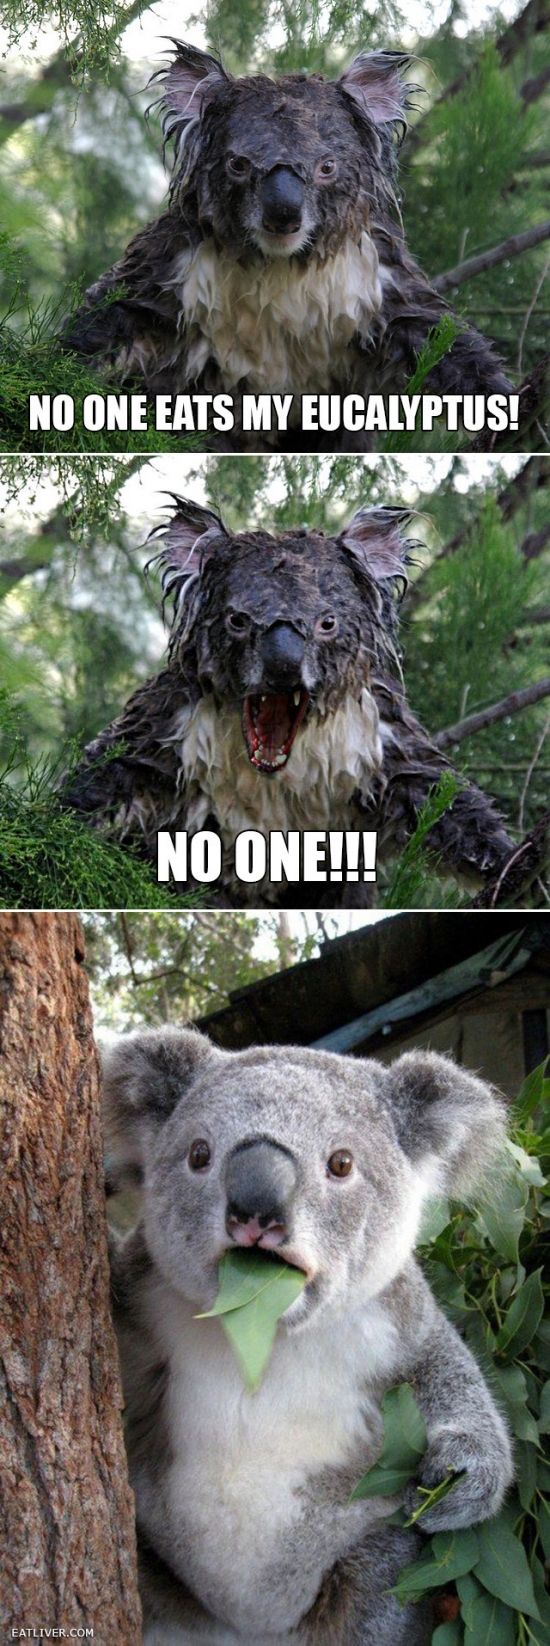 No One Eats My Eucalypus